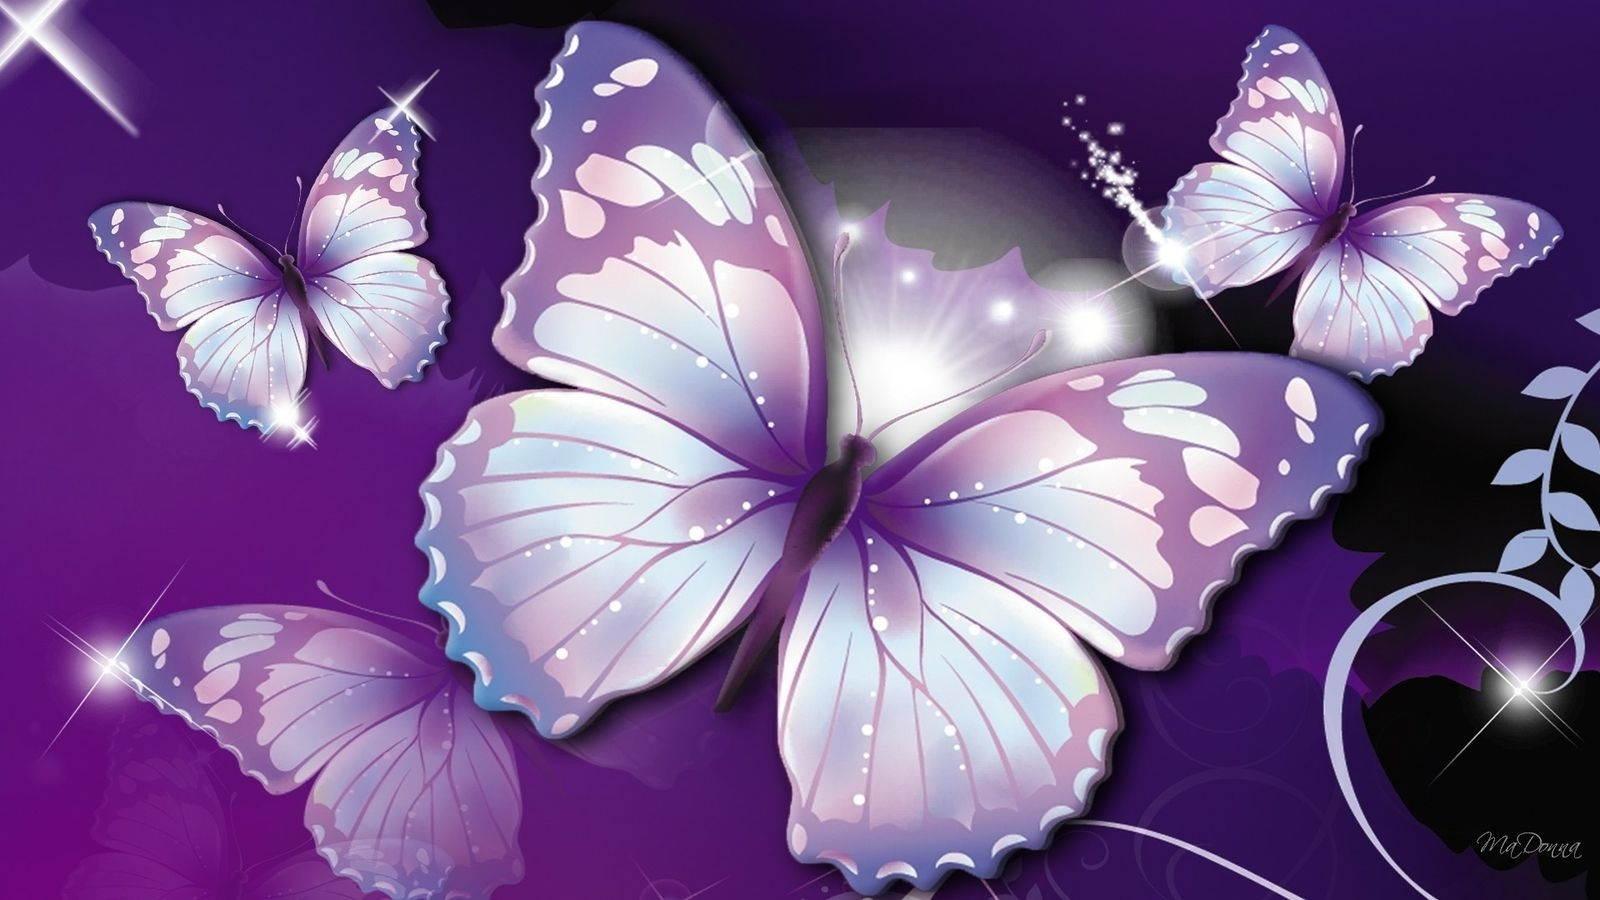 10 Best Wallpaper Butterfly Free Download FULL HD 1920×1080 For PC Desktop